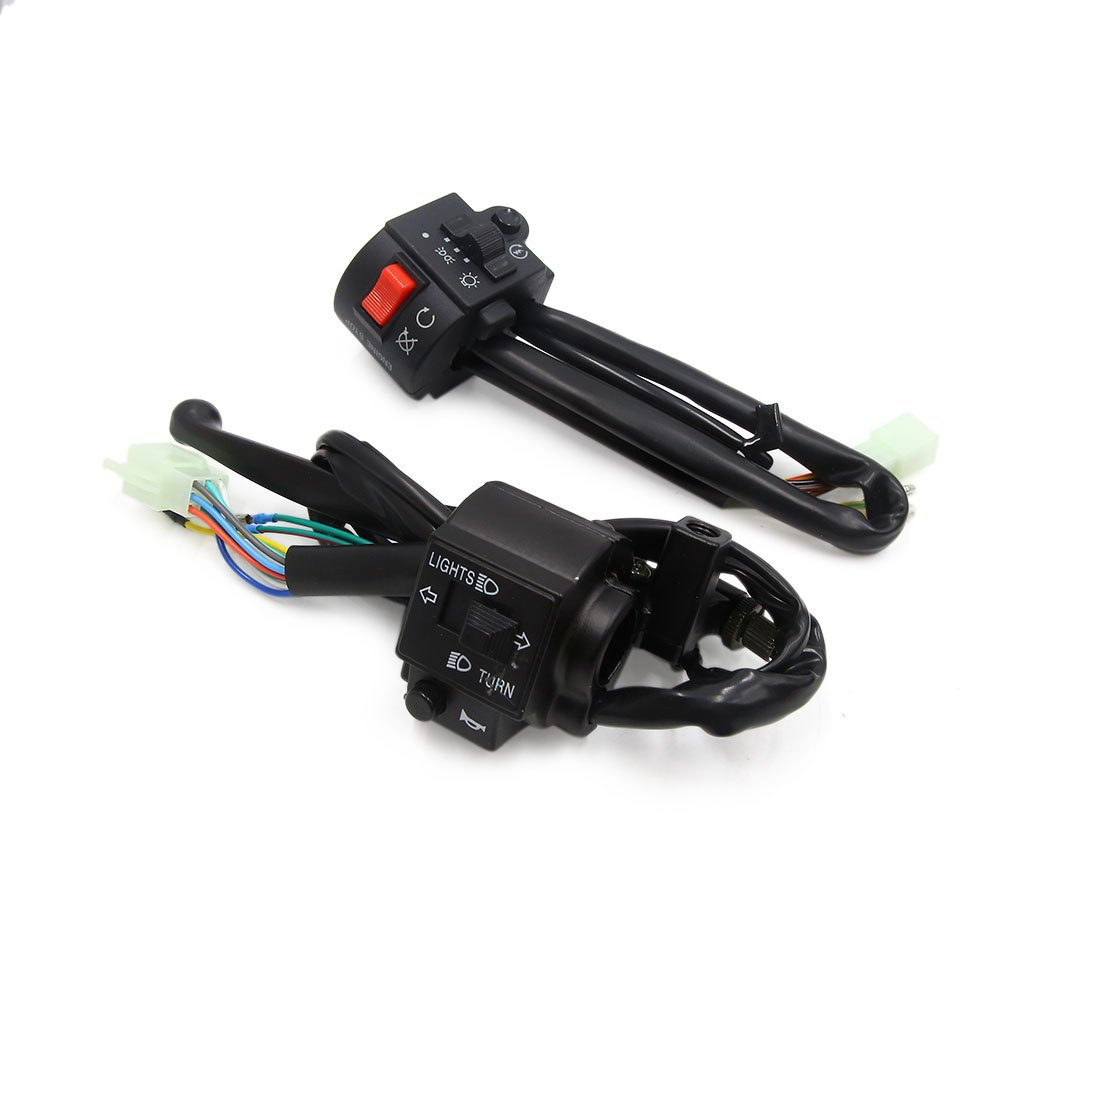 Uxcell a17071300ux0103 Motorcycle Switch 2 Pack